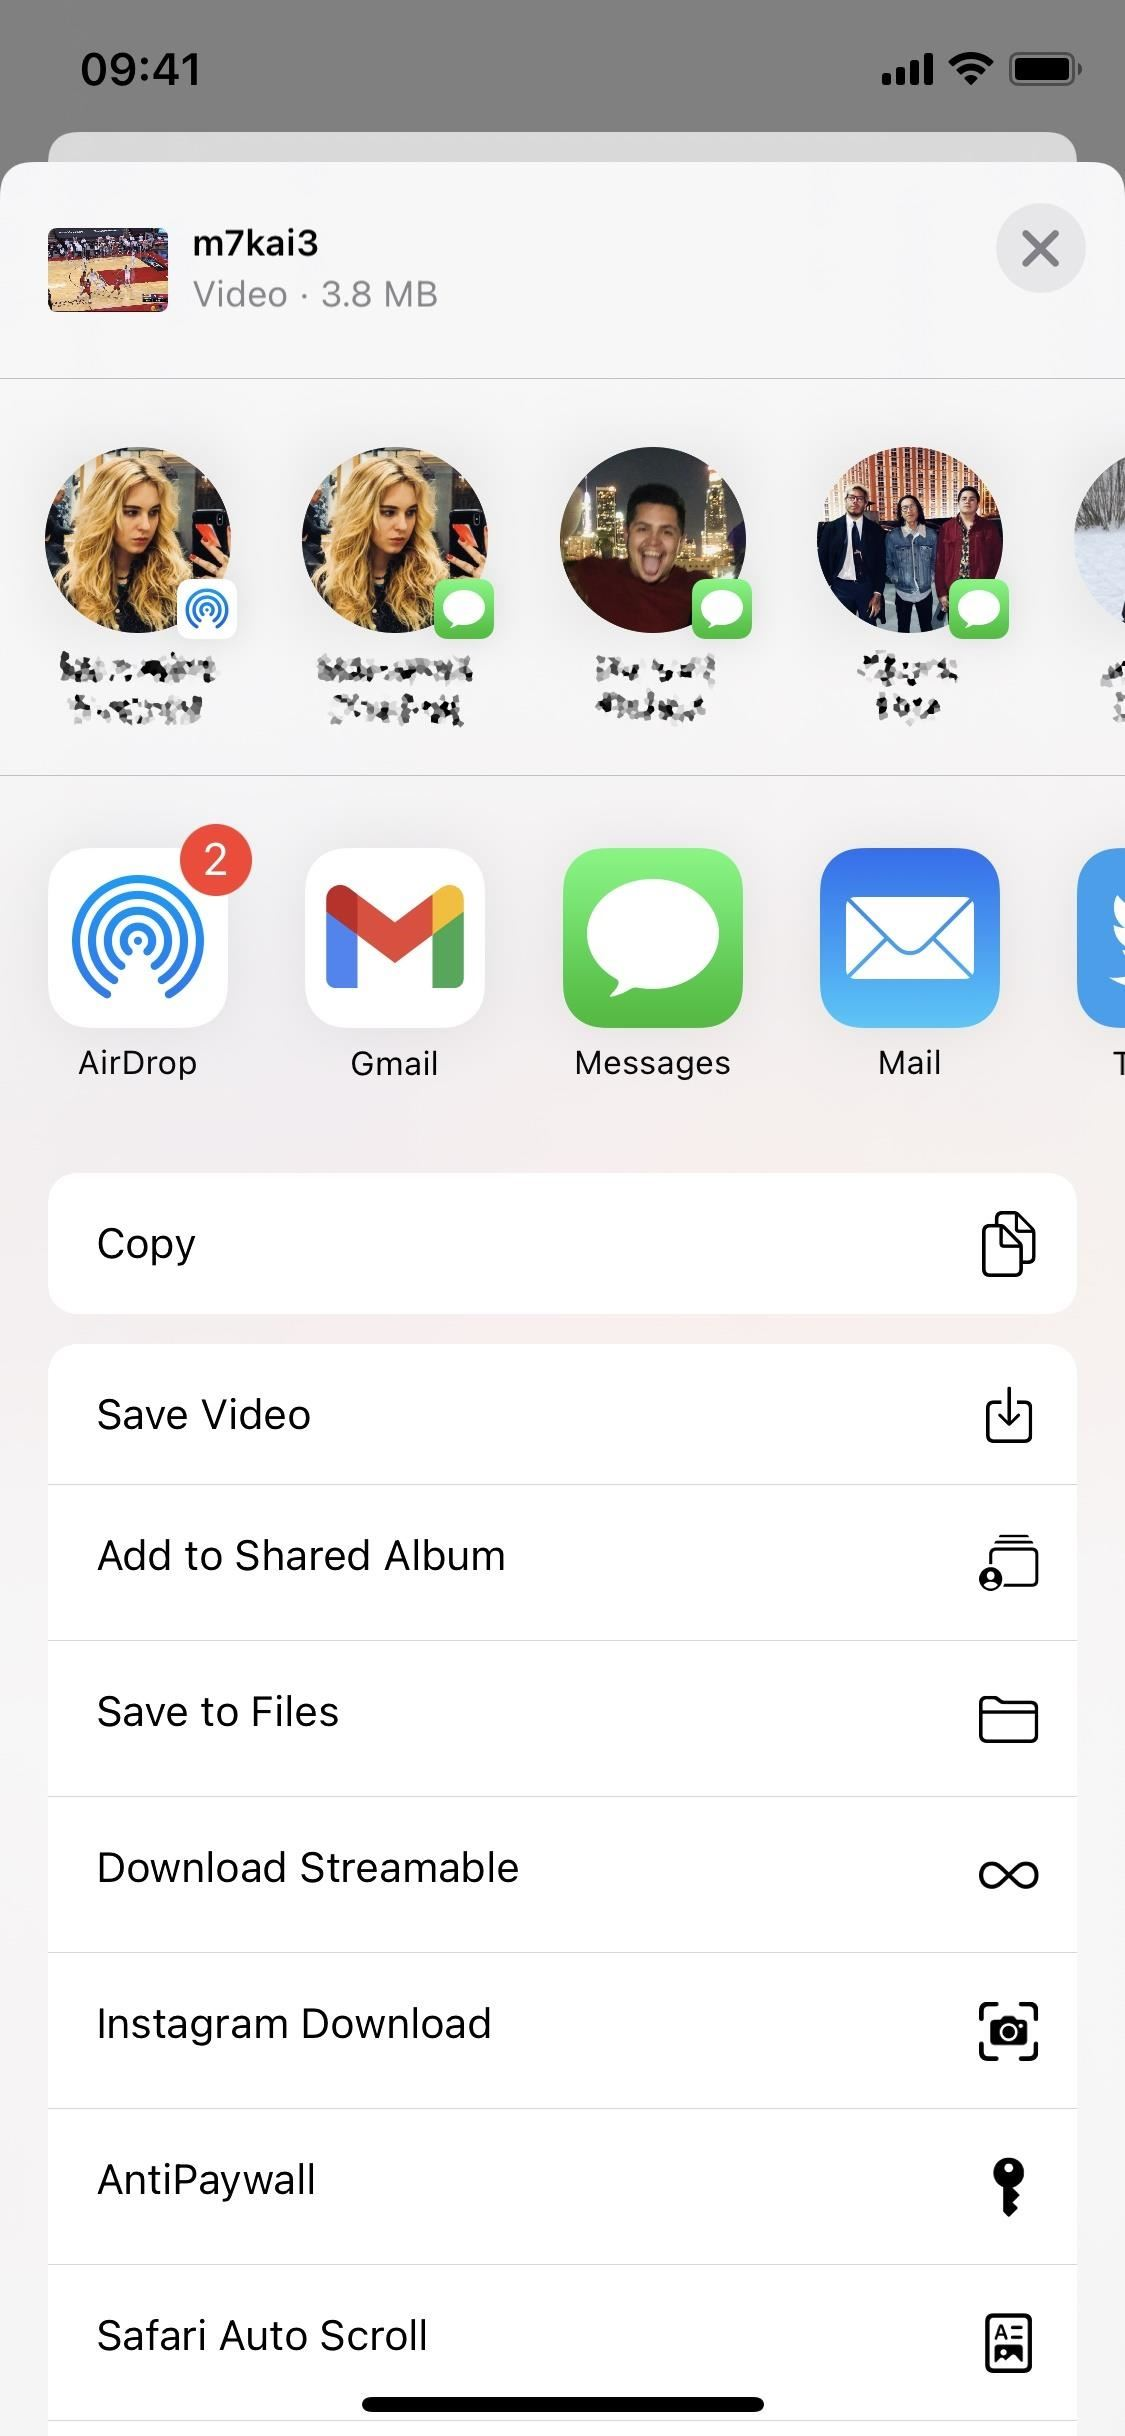 How to Quickly Download Streamable Videos on Your iPhone Before They Disappear Online